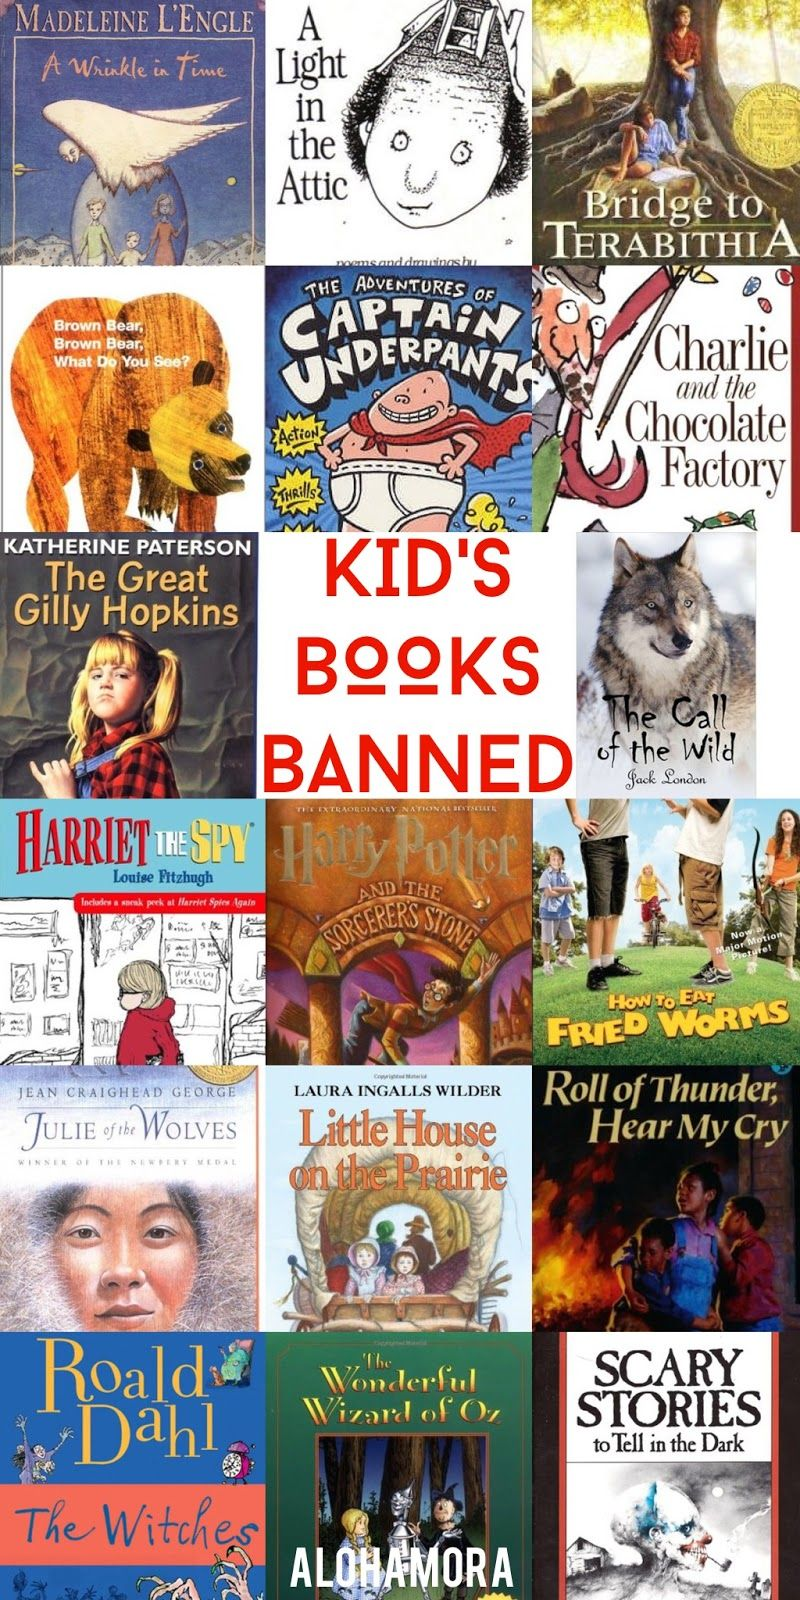 Alohamora: Open a Book: Even Children's Books are Banned- Banned Book Week... Children's